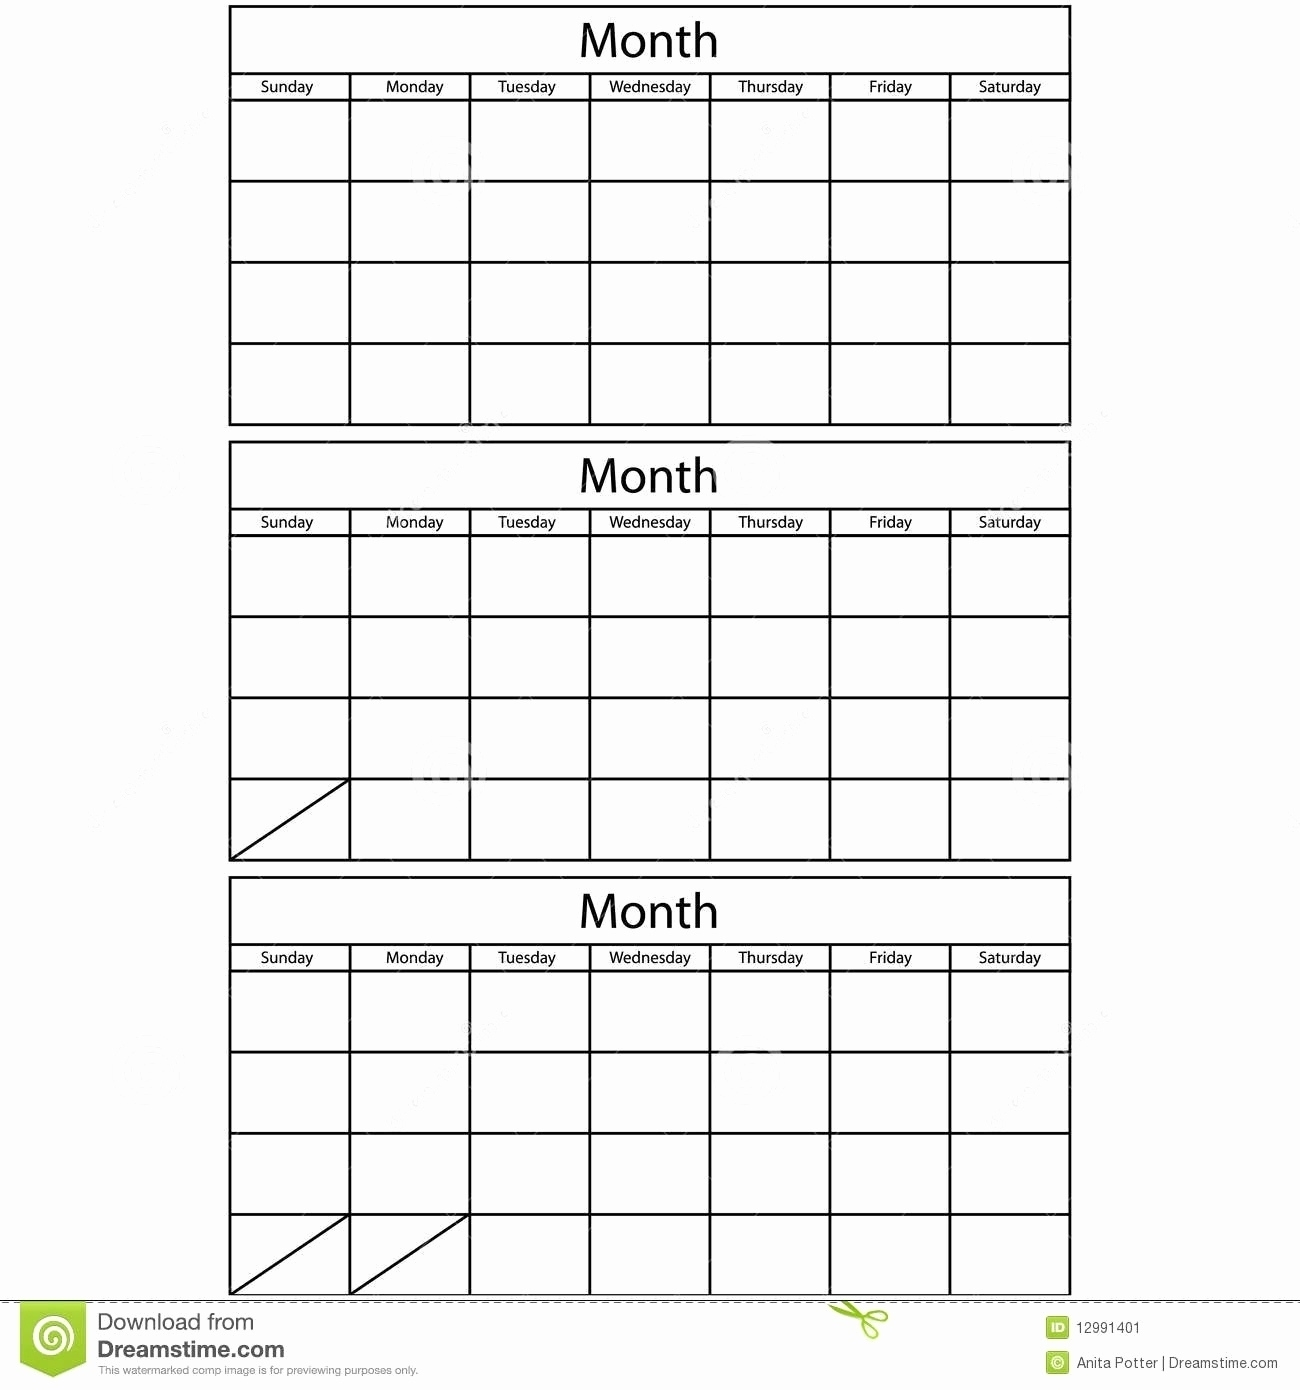 3 Month Planning Calendar Free Printable • Printable Blank Calendar pertaining to Free 3 Month Calendars To Print